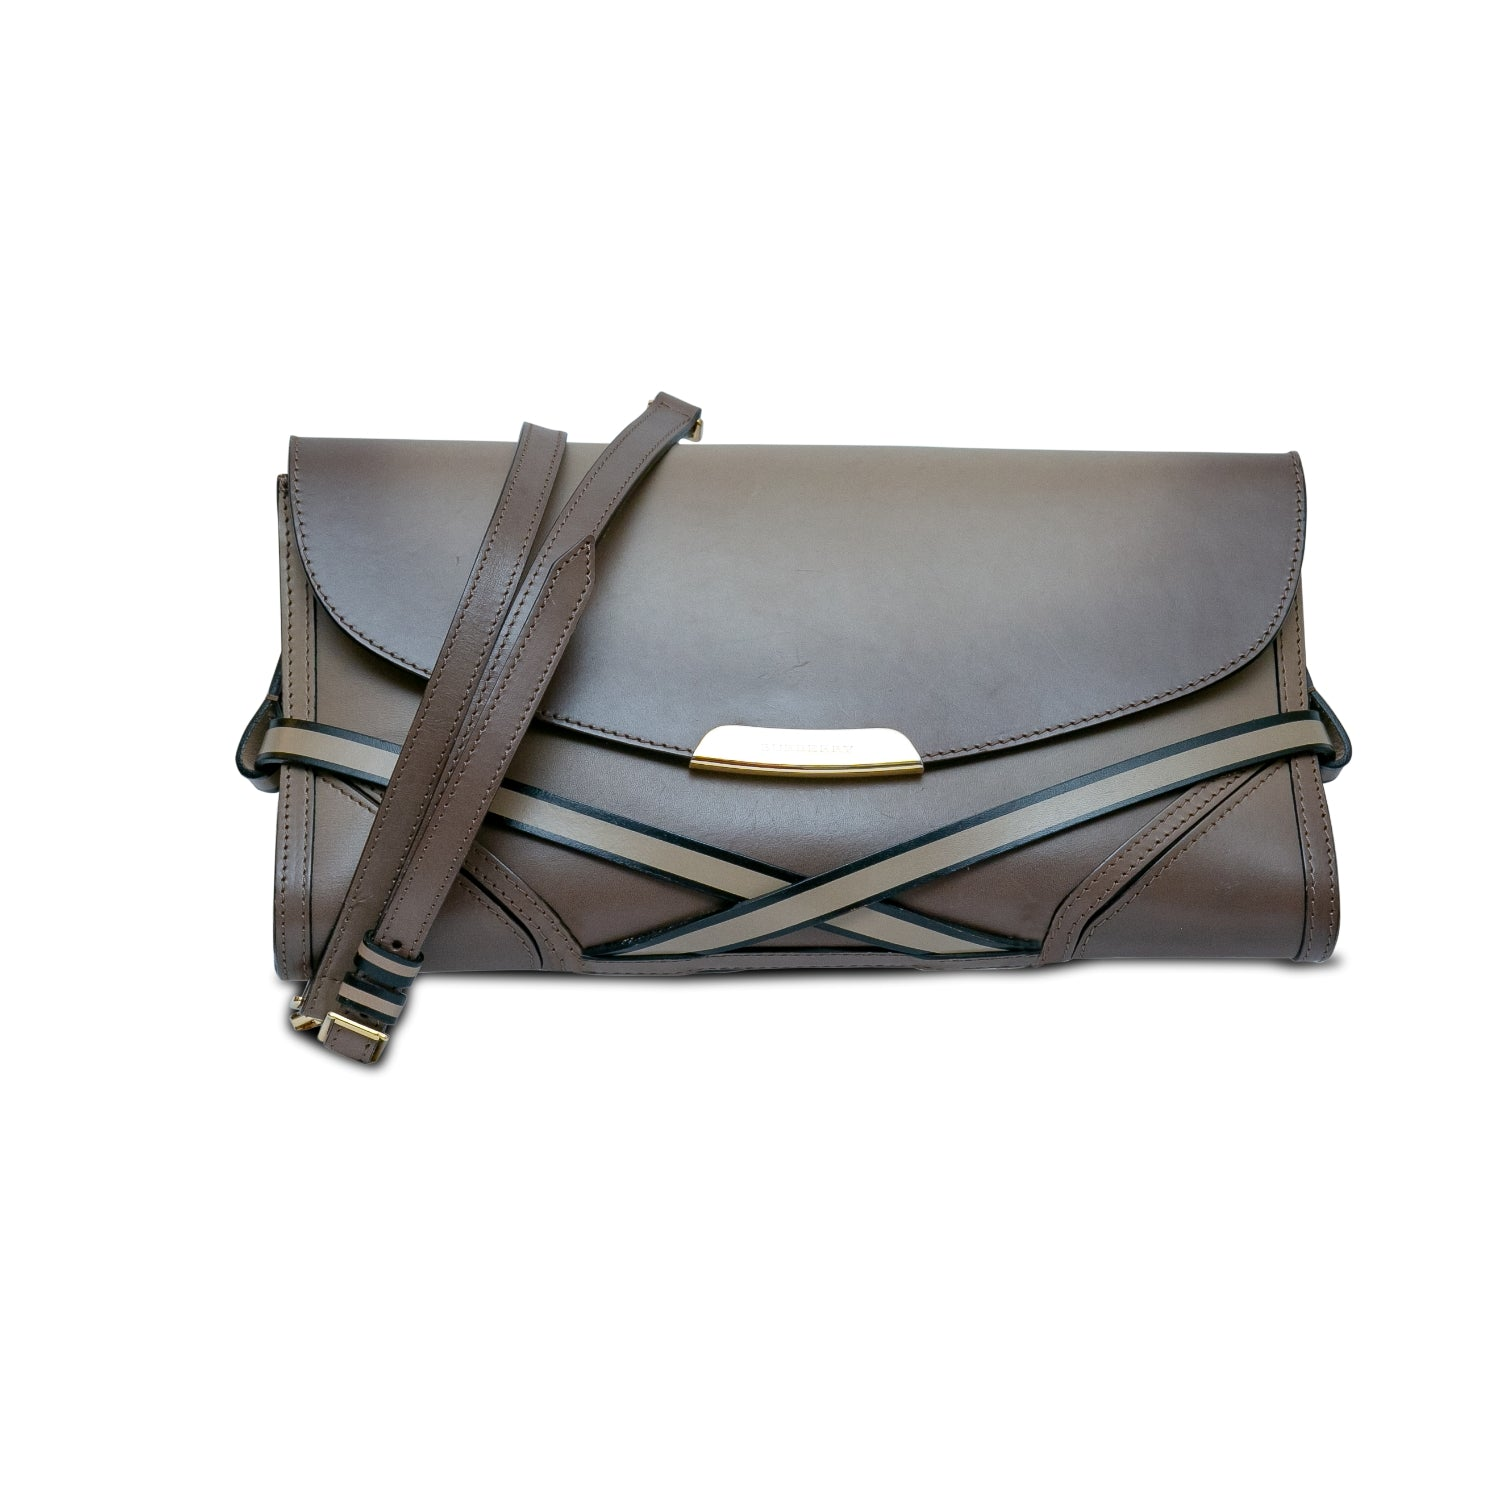 ladiesoflux - Burberry Bridle Crossbody Clutch - Ladies Of Lux - Handbag